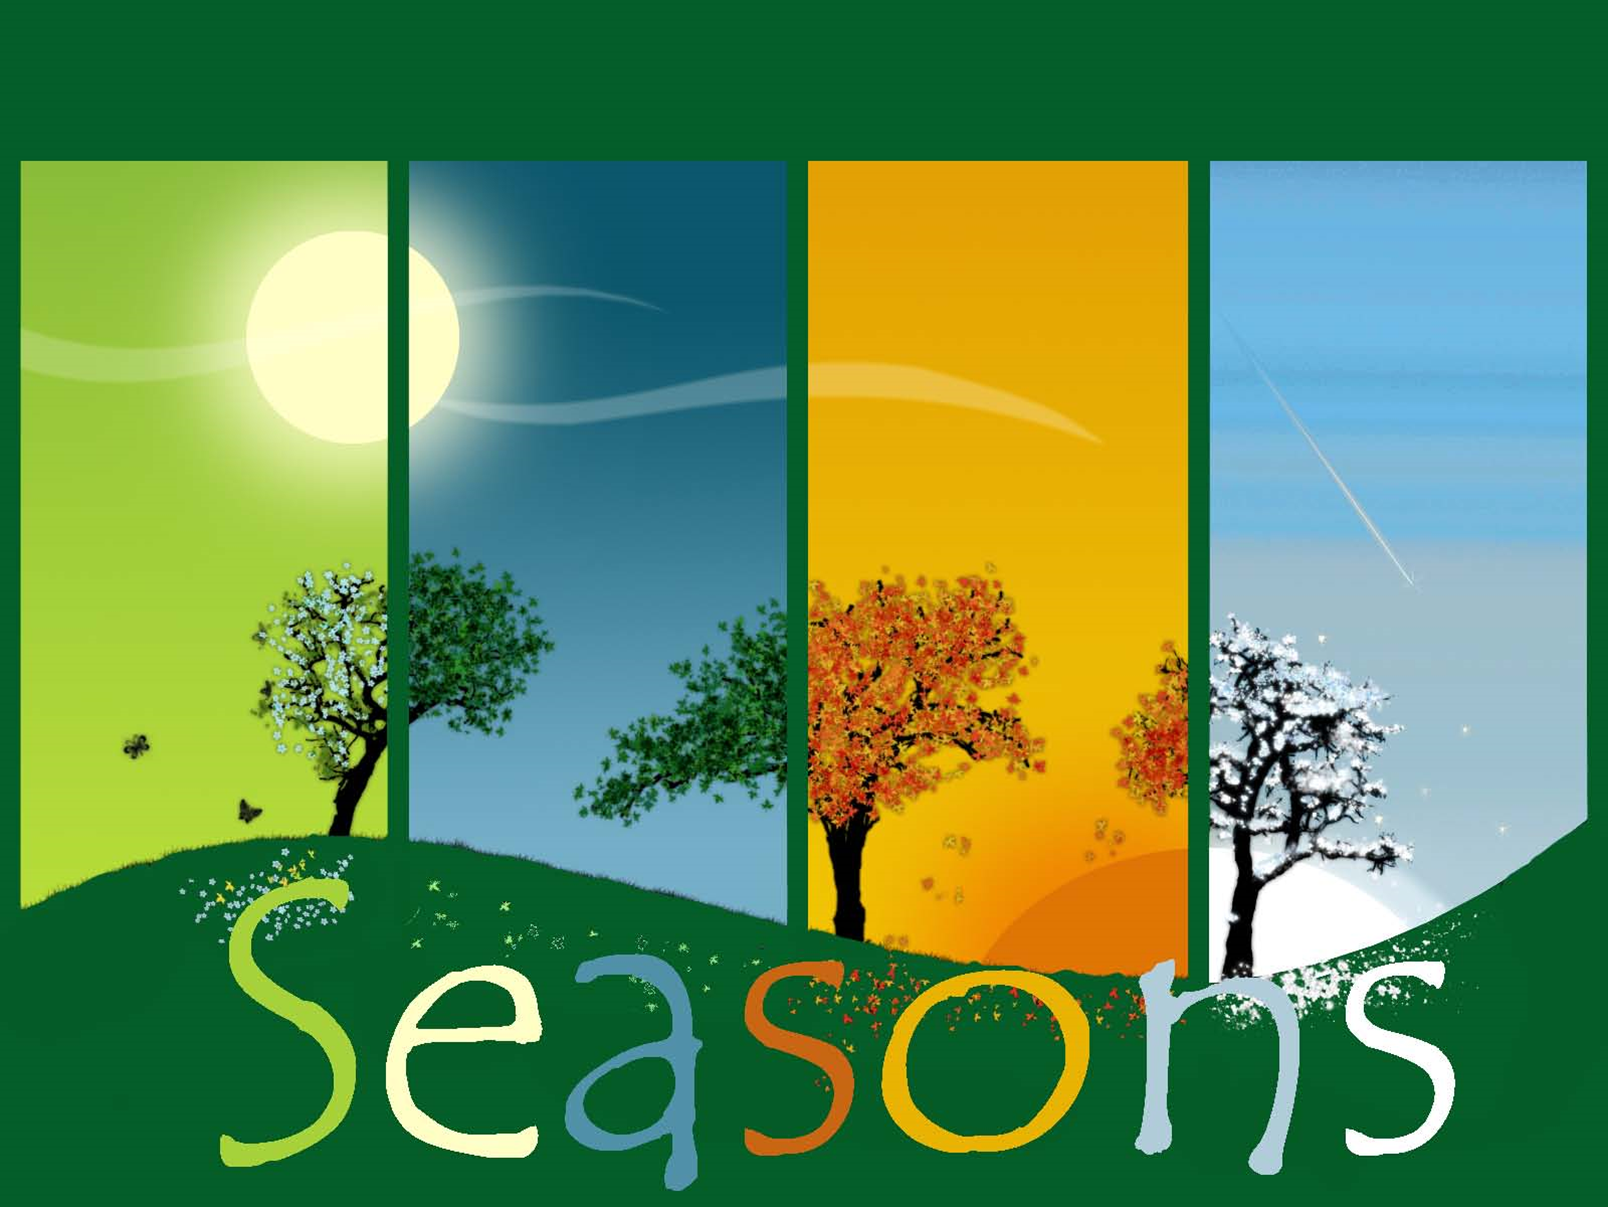 understanding seasons matthew ball